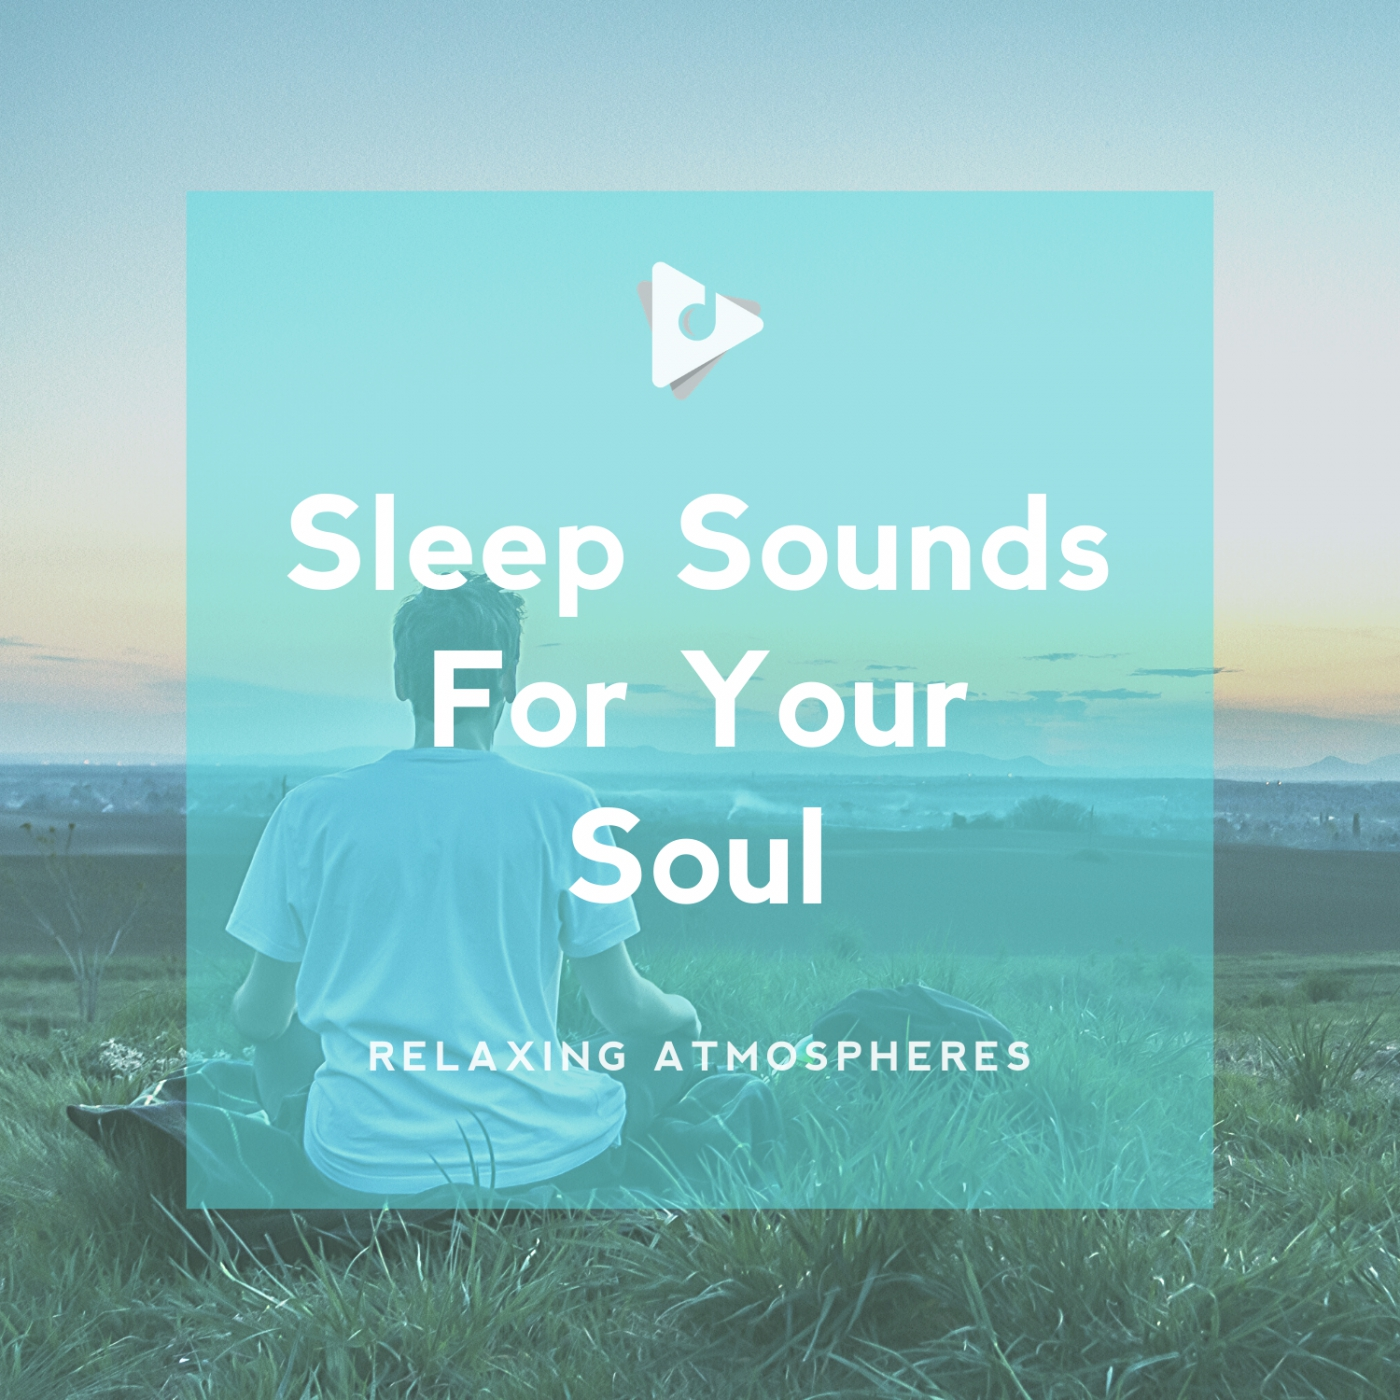 Sleep Sounds For Your Soul